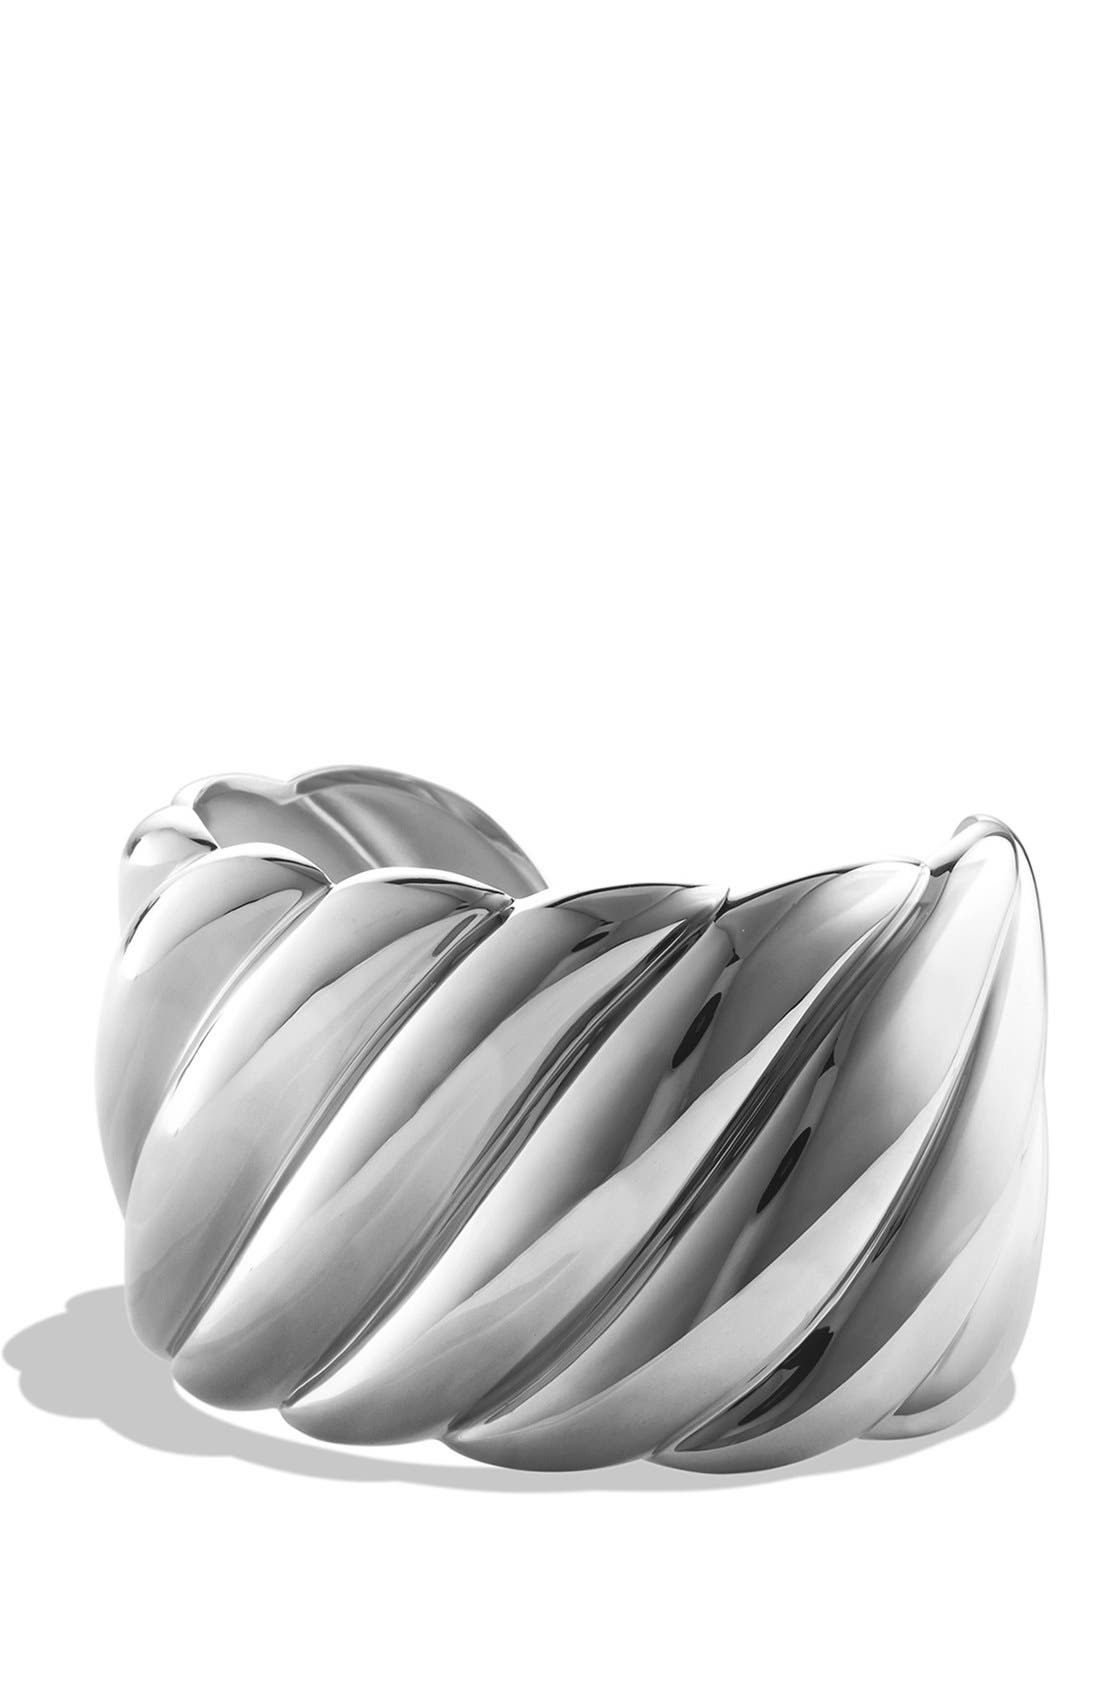 Main Image - David Yurman 'Sculpted Cable' Wide Cuff